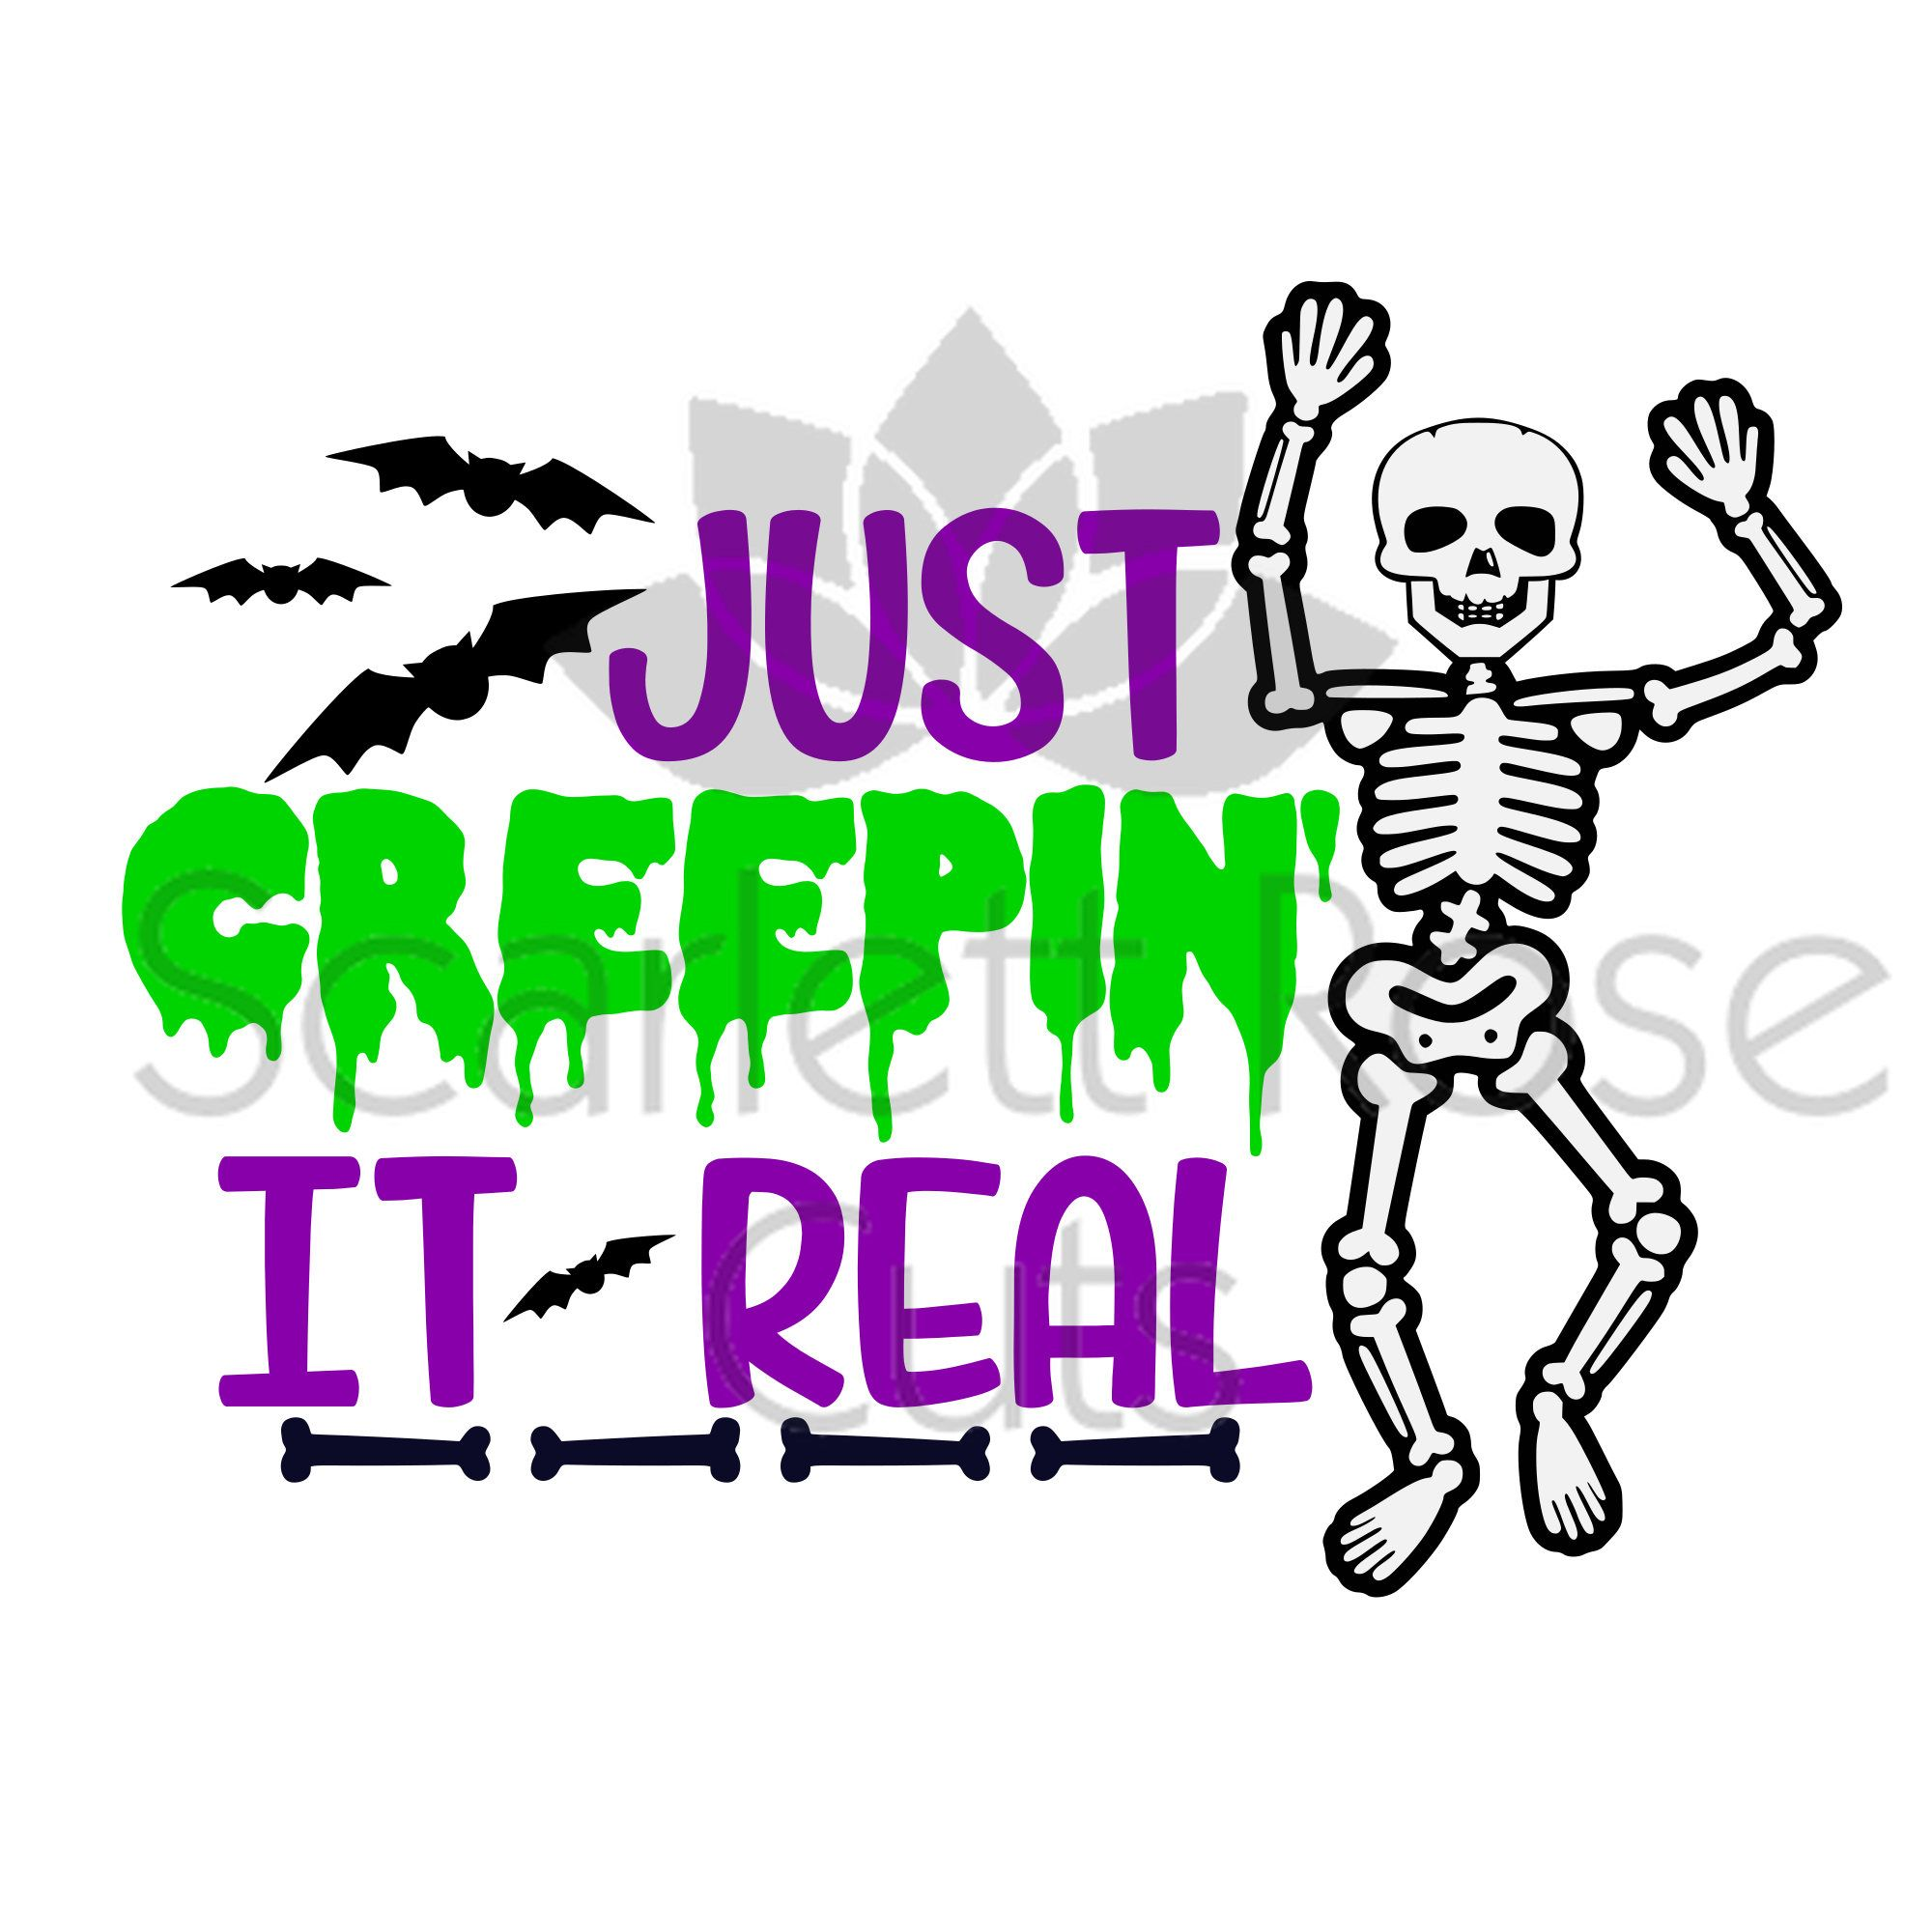 Just Creepin It Real Skeleton Halloween Svg Cut File For